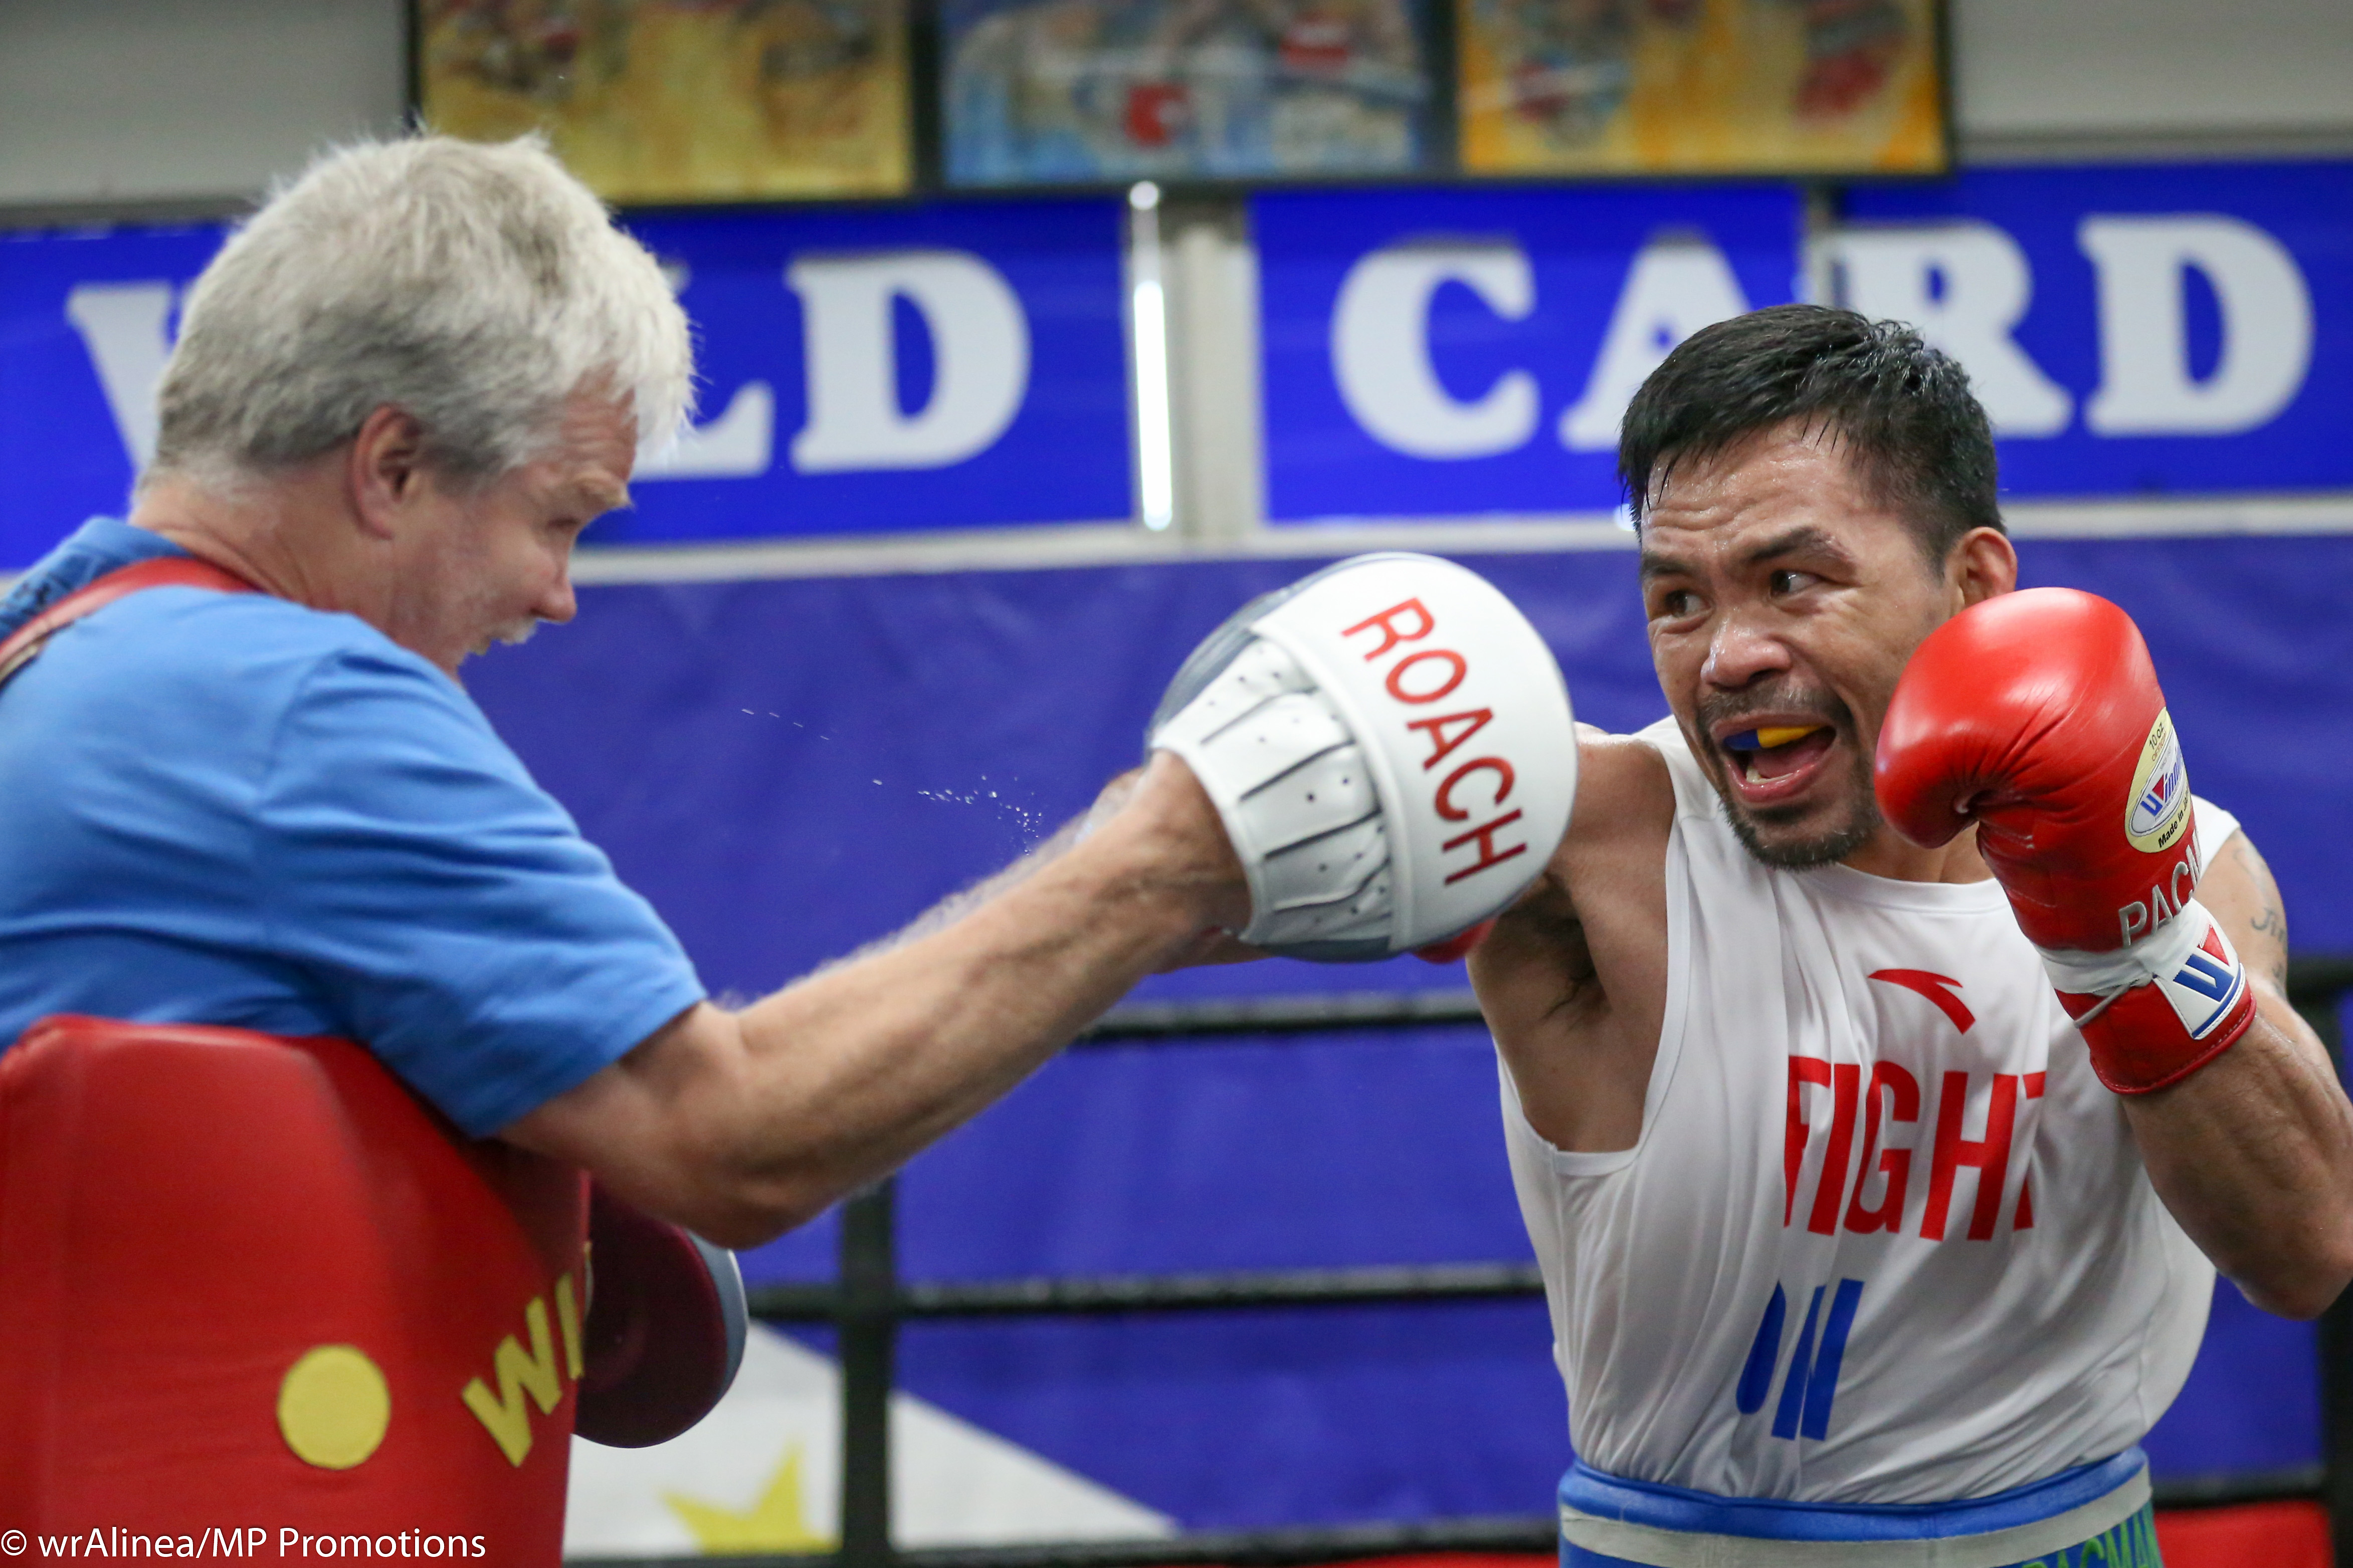 679DFFE9 1947 4679 ABB5 84B478867A9E - Pacquiao vs Thurman Promises to be an All Action Fight